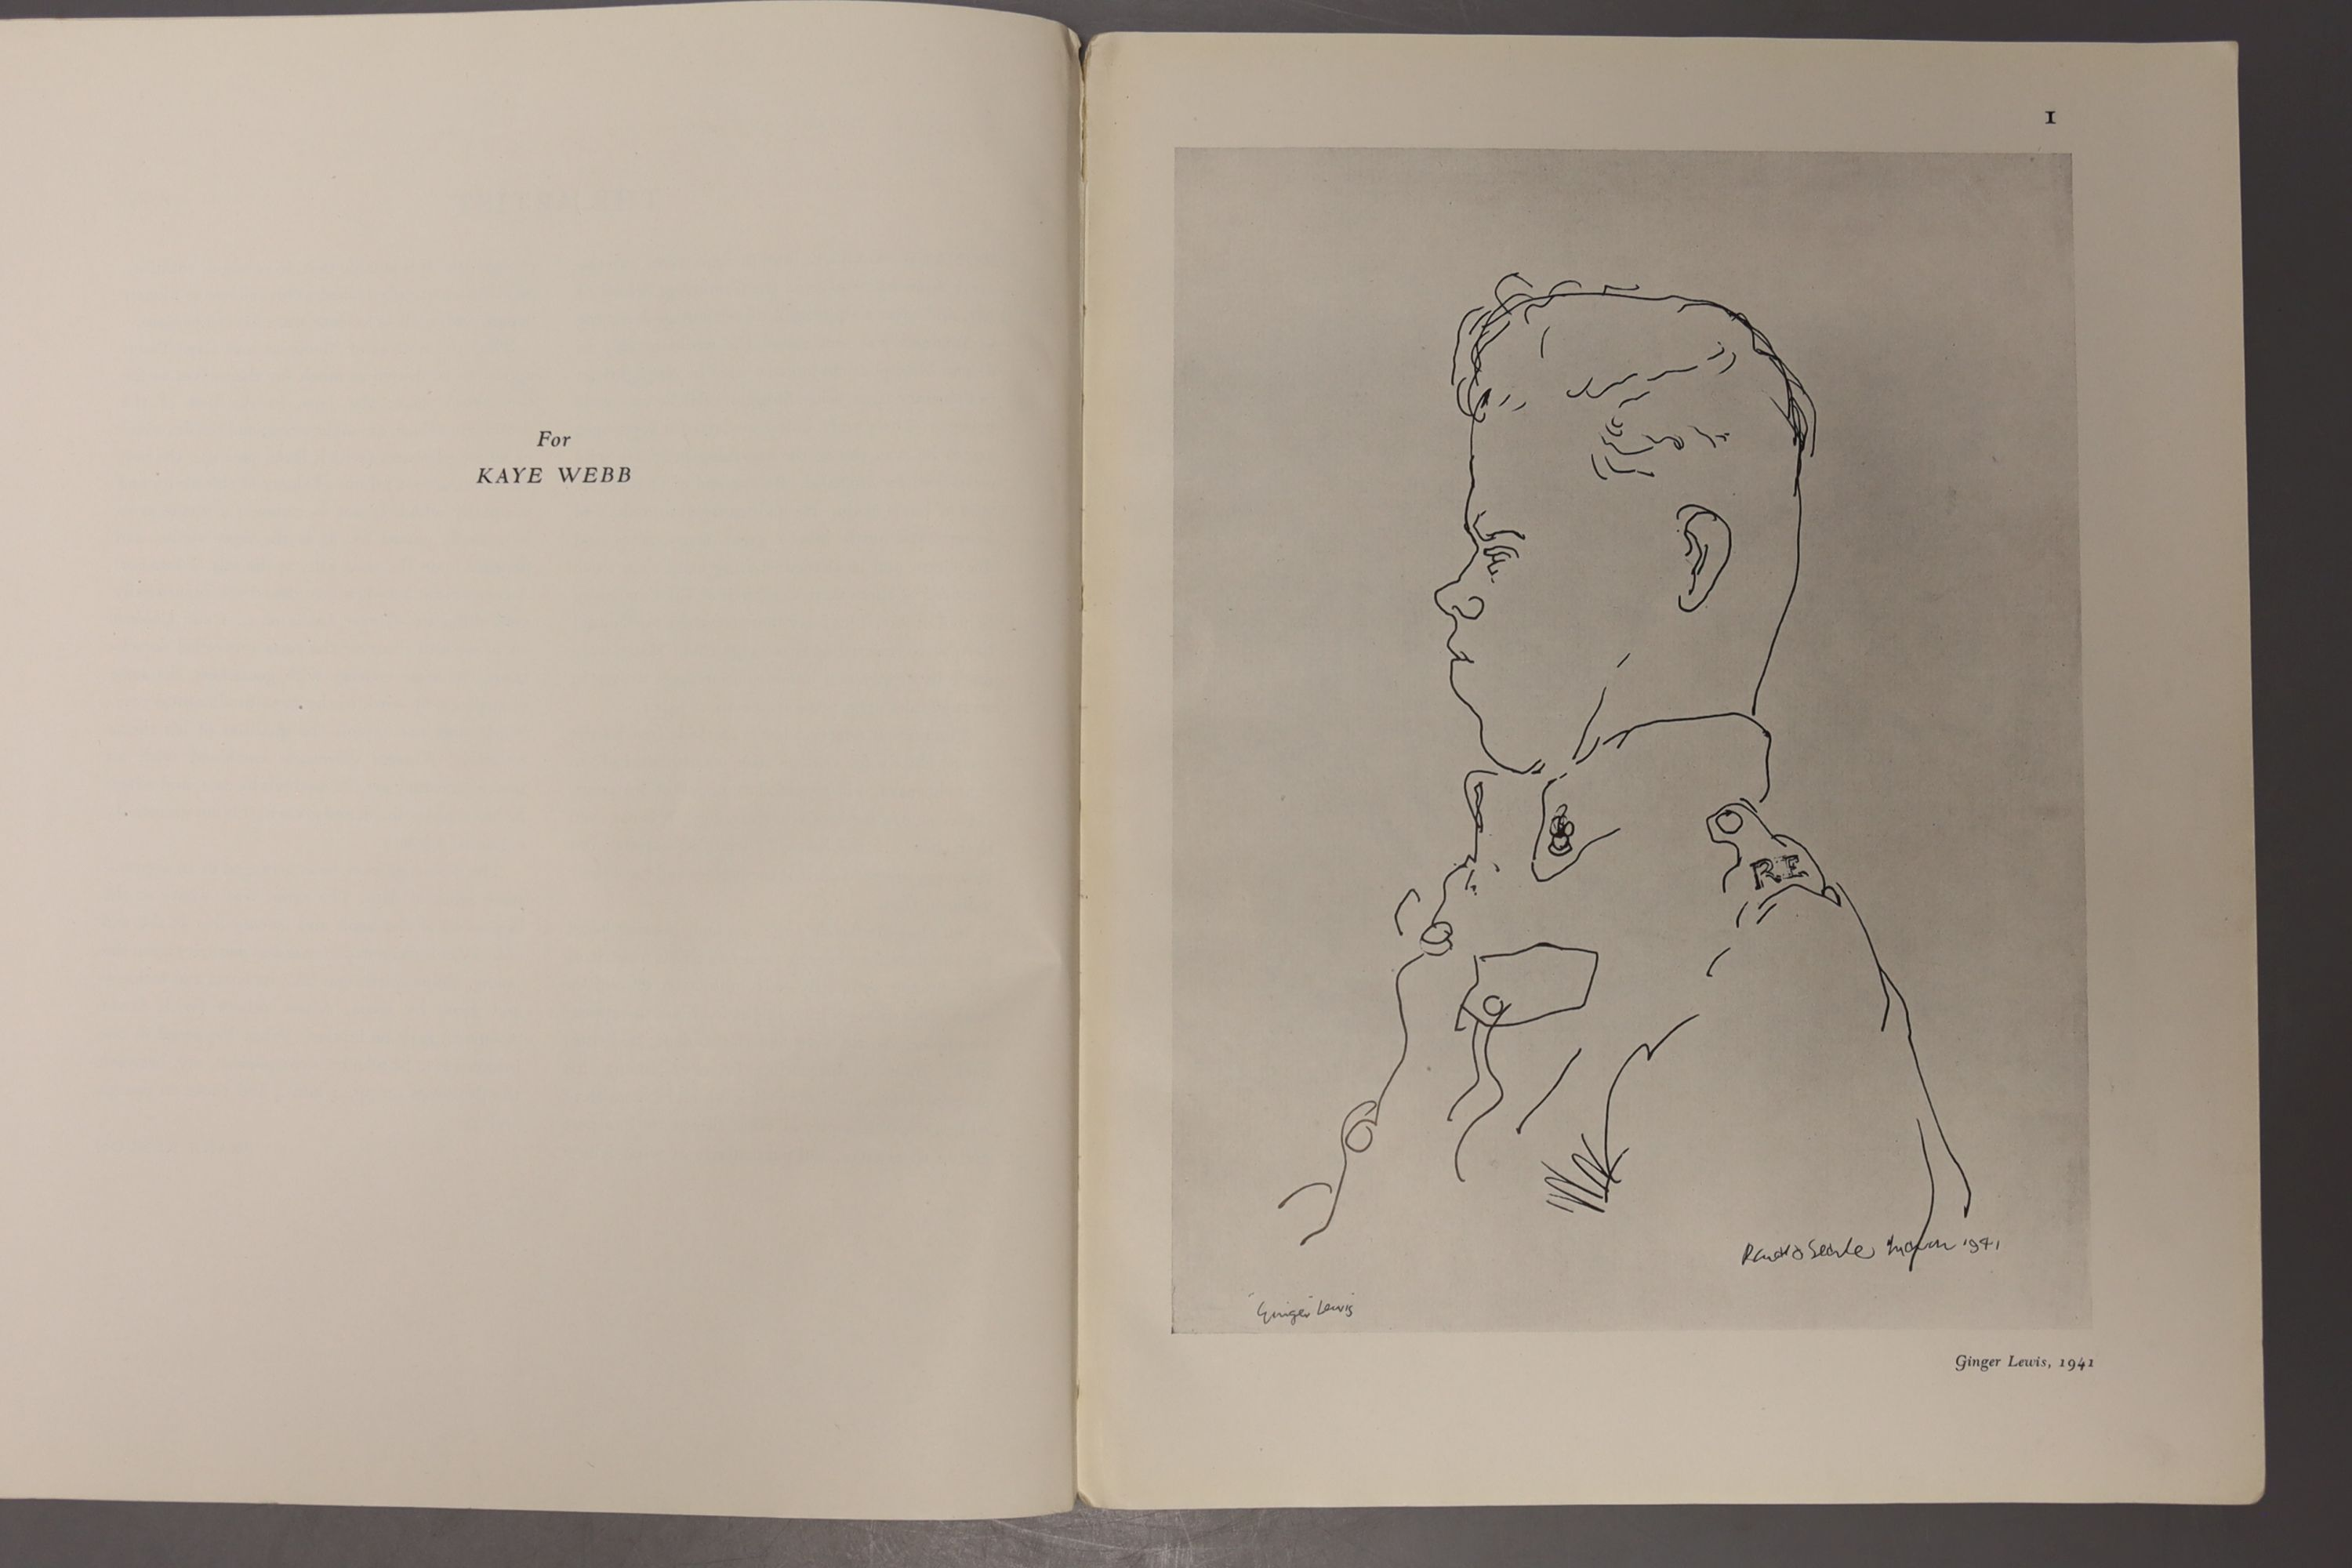 Rae, Simon & Searle, Roland, 'The Face of War', A signed limited edition numbered 103/294, - Image 9 of 10